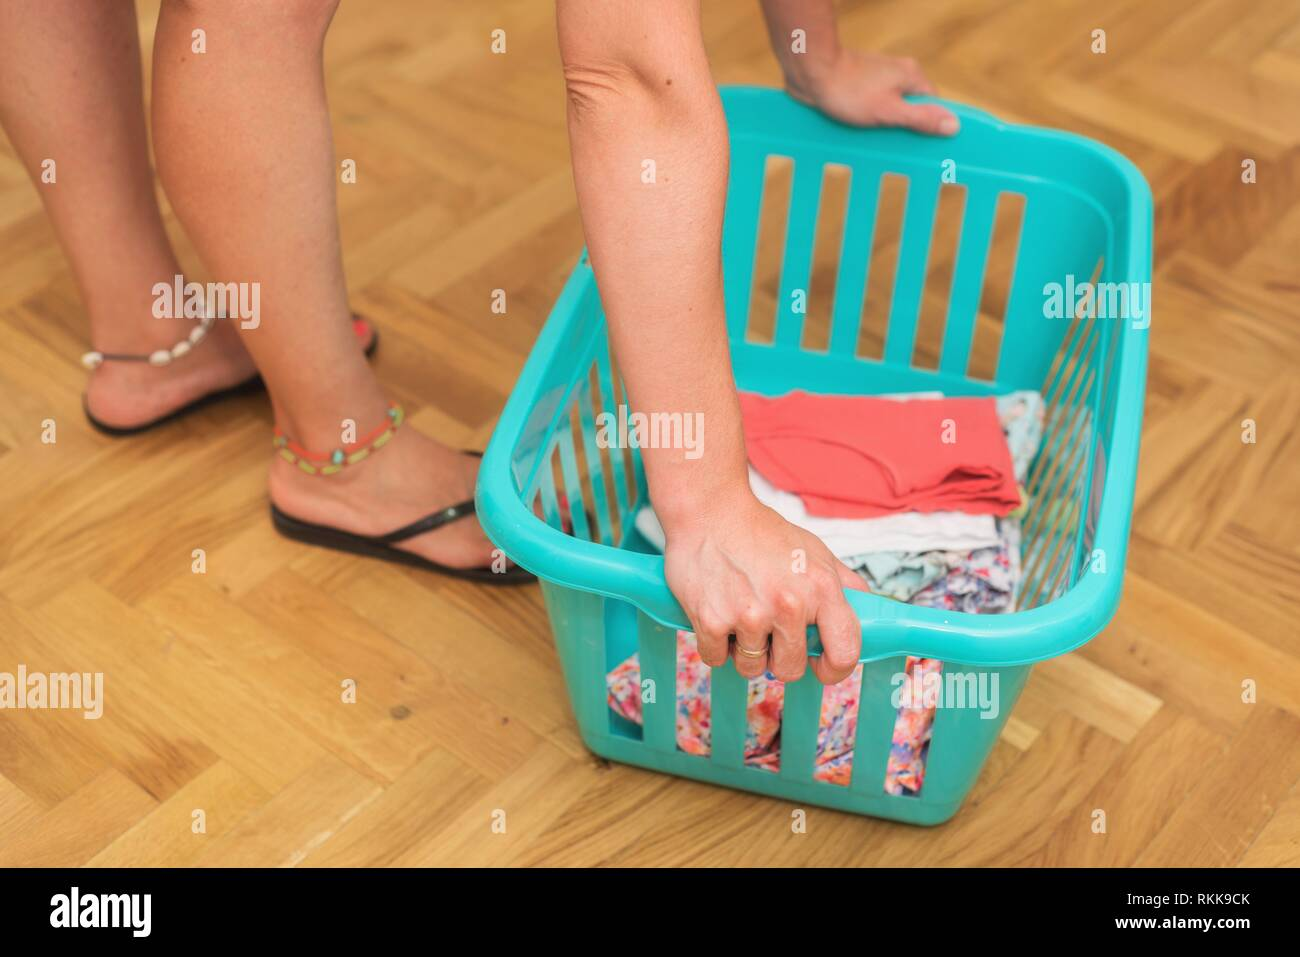 Young woman doing housework holding a basket with laundry. - Stock Image